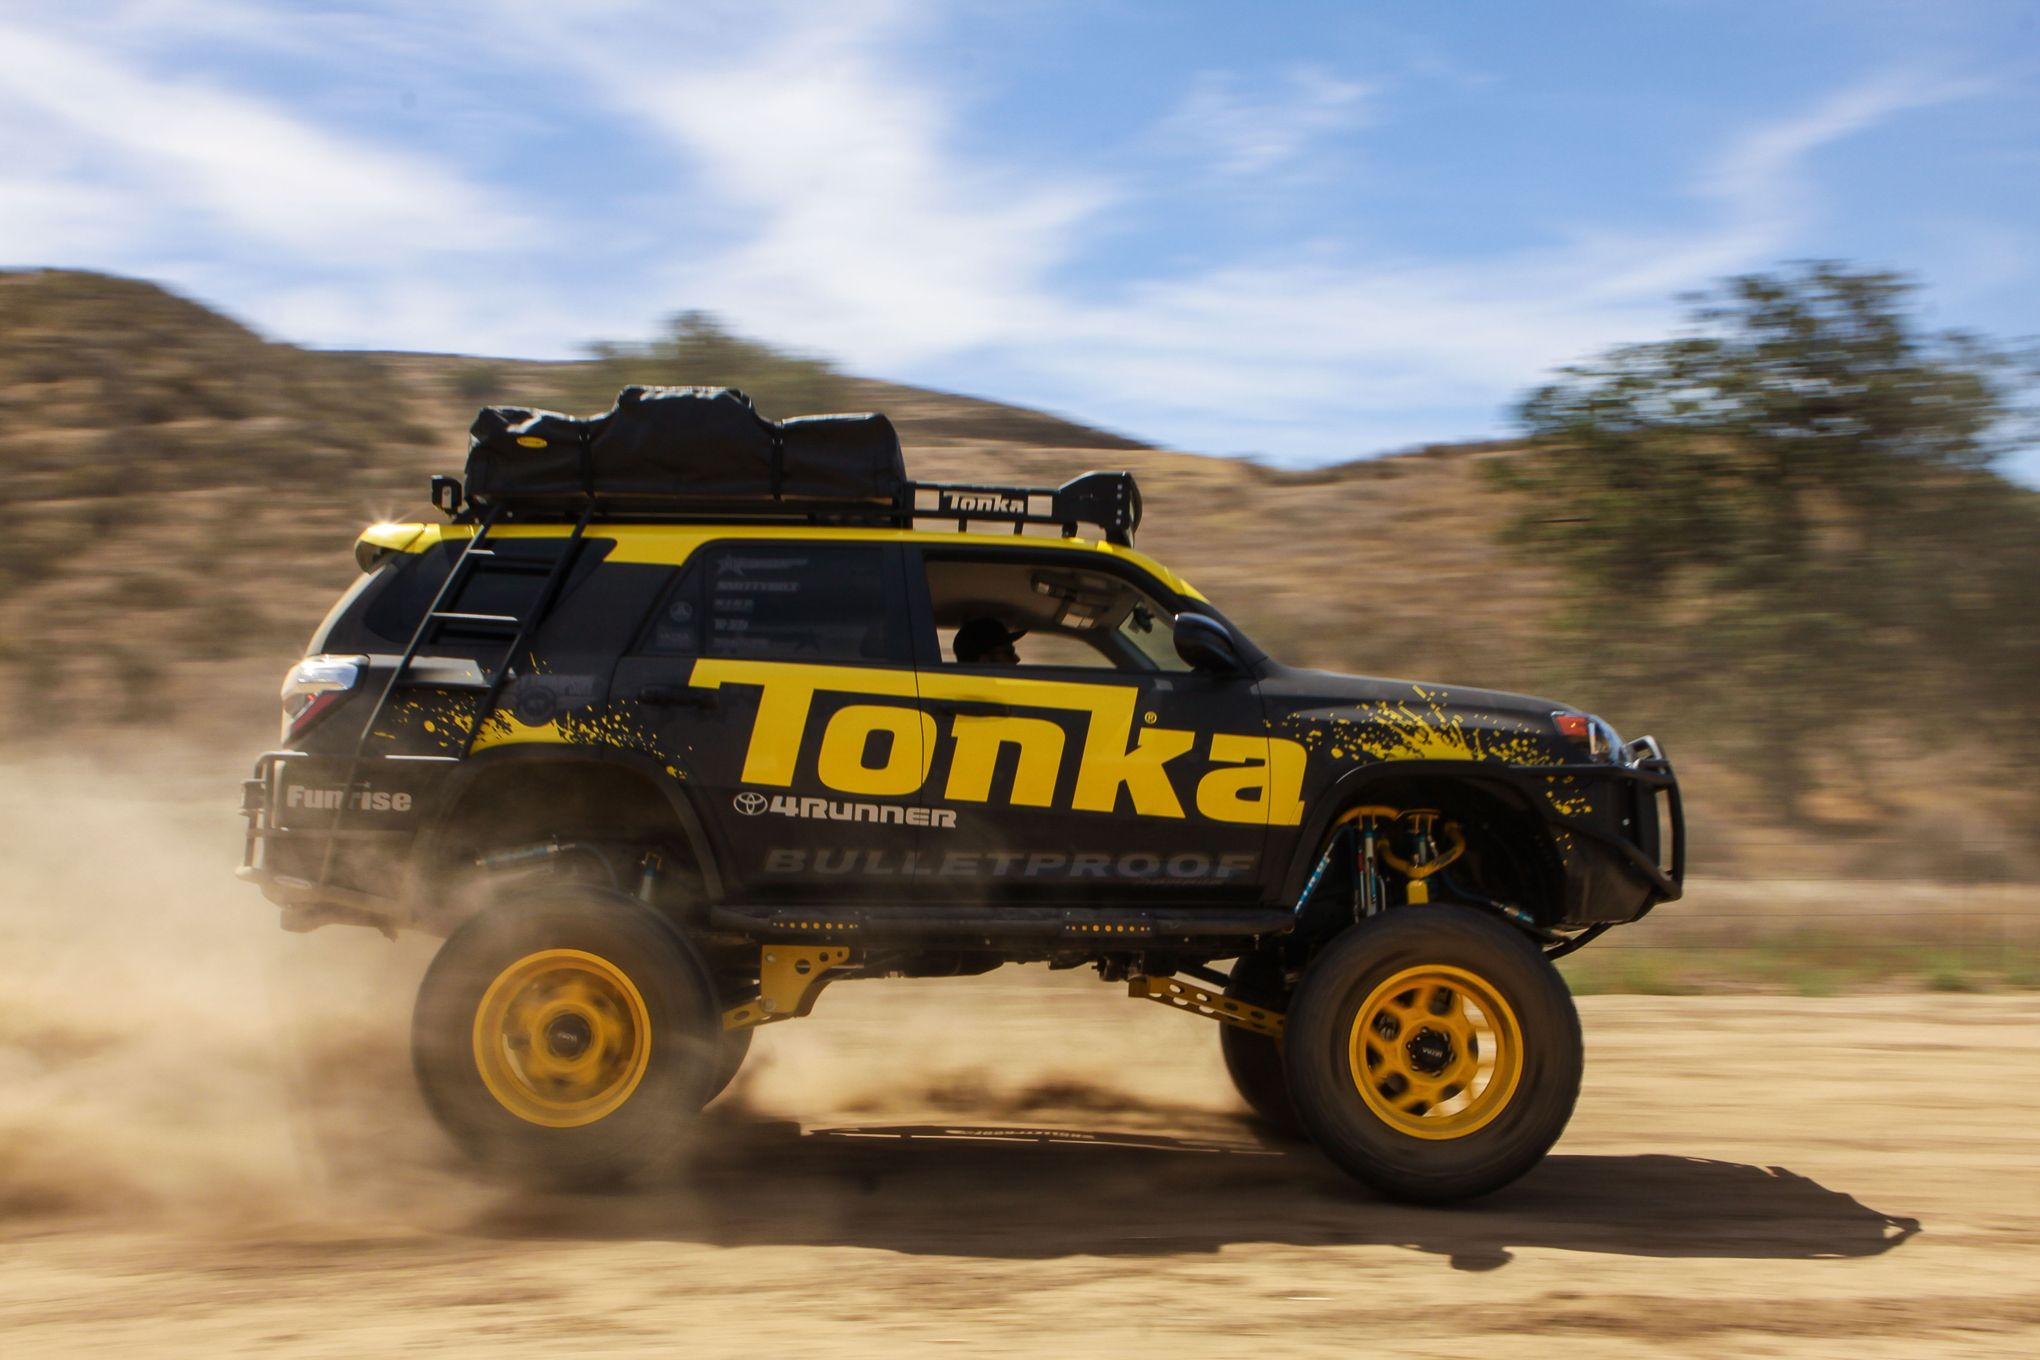 This Custom Toyota 4runner Is Tonka Toys Newest Full Size Ride Autoevolution